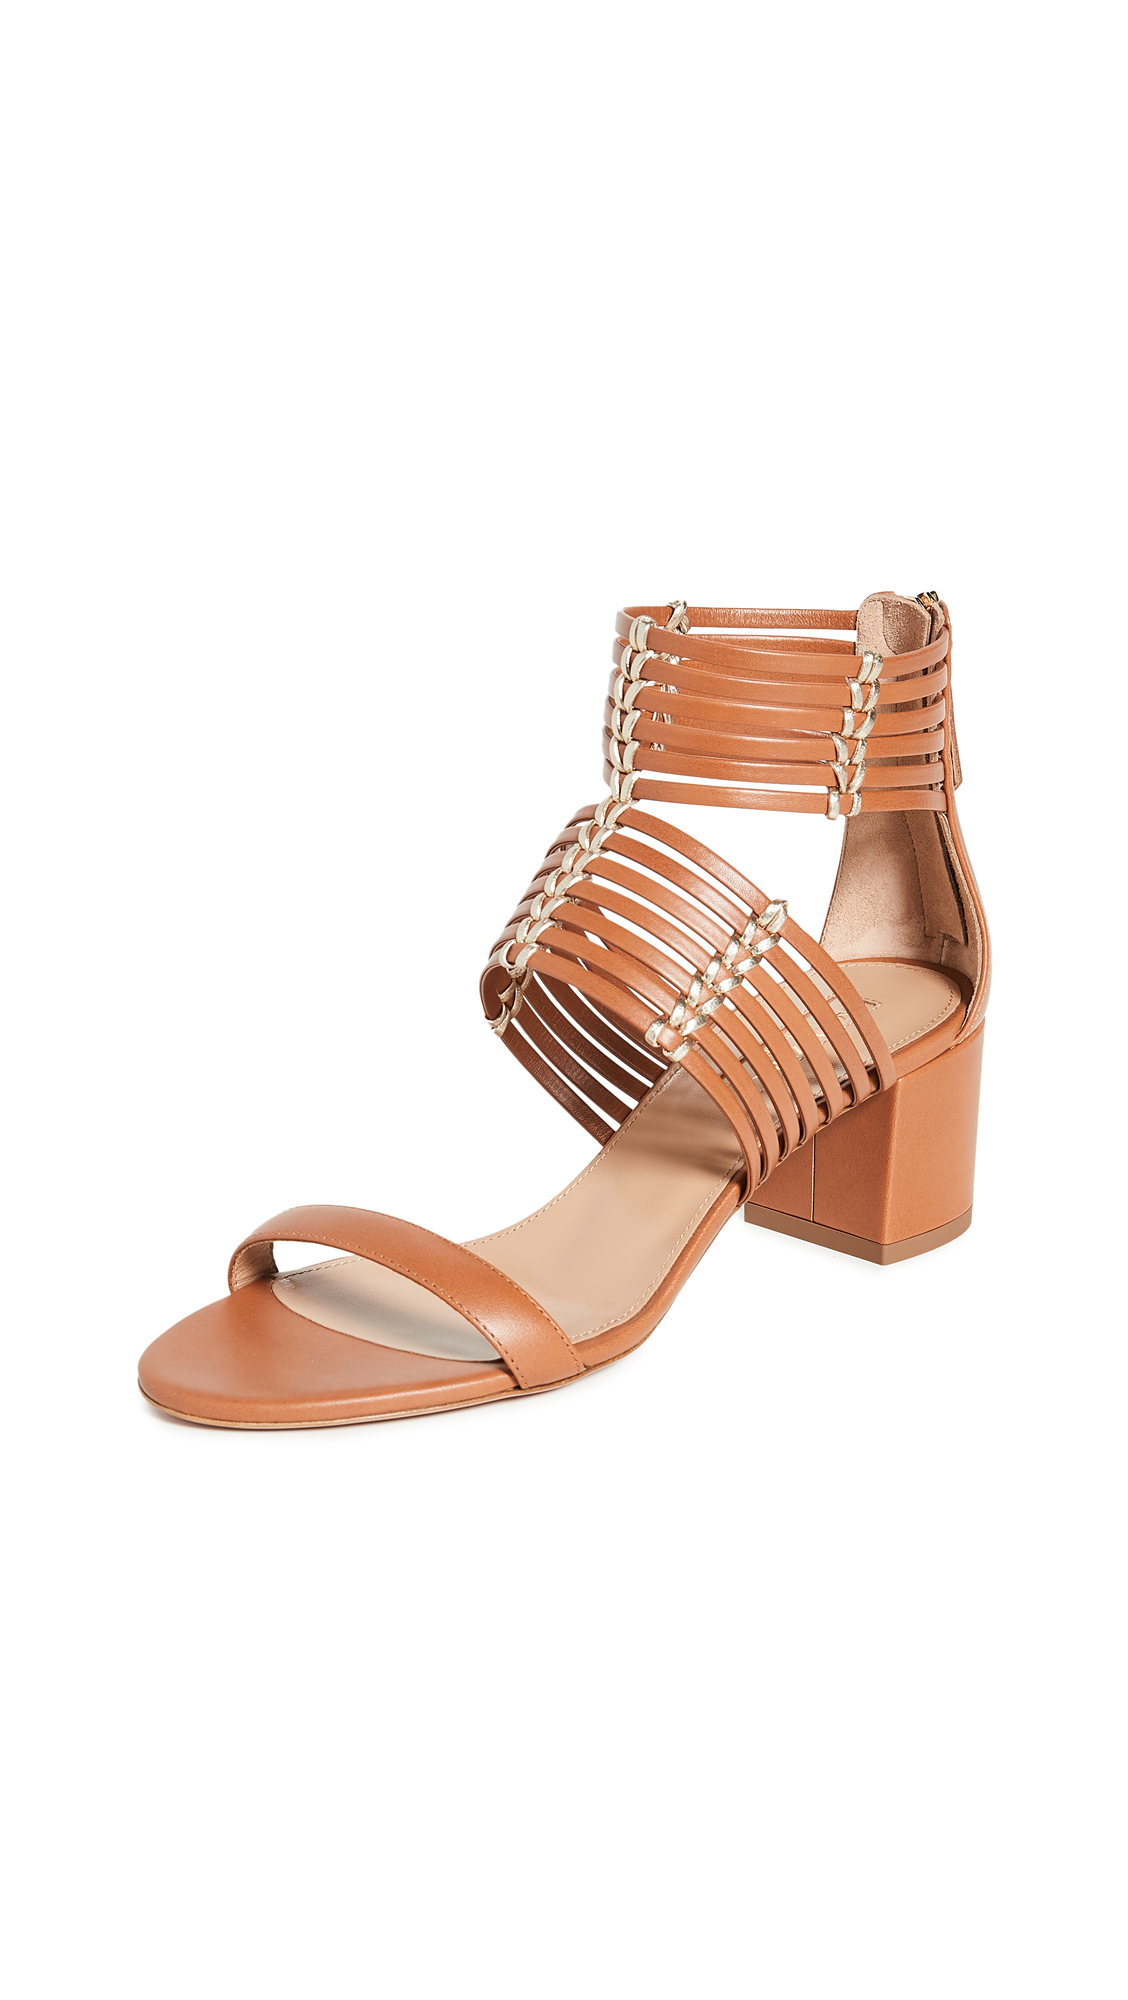 Buy Aquazzura 50mm Ravello Sandals online, shop Aquazzura